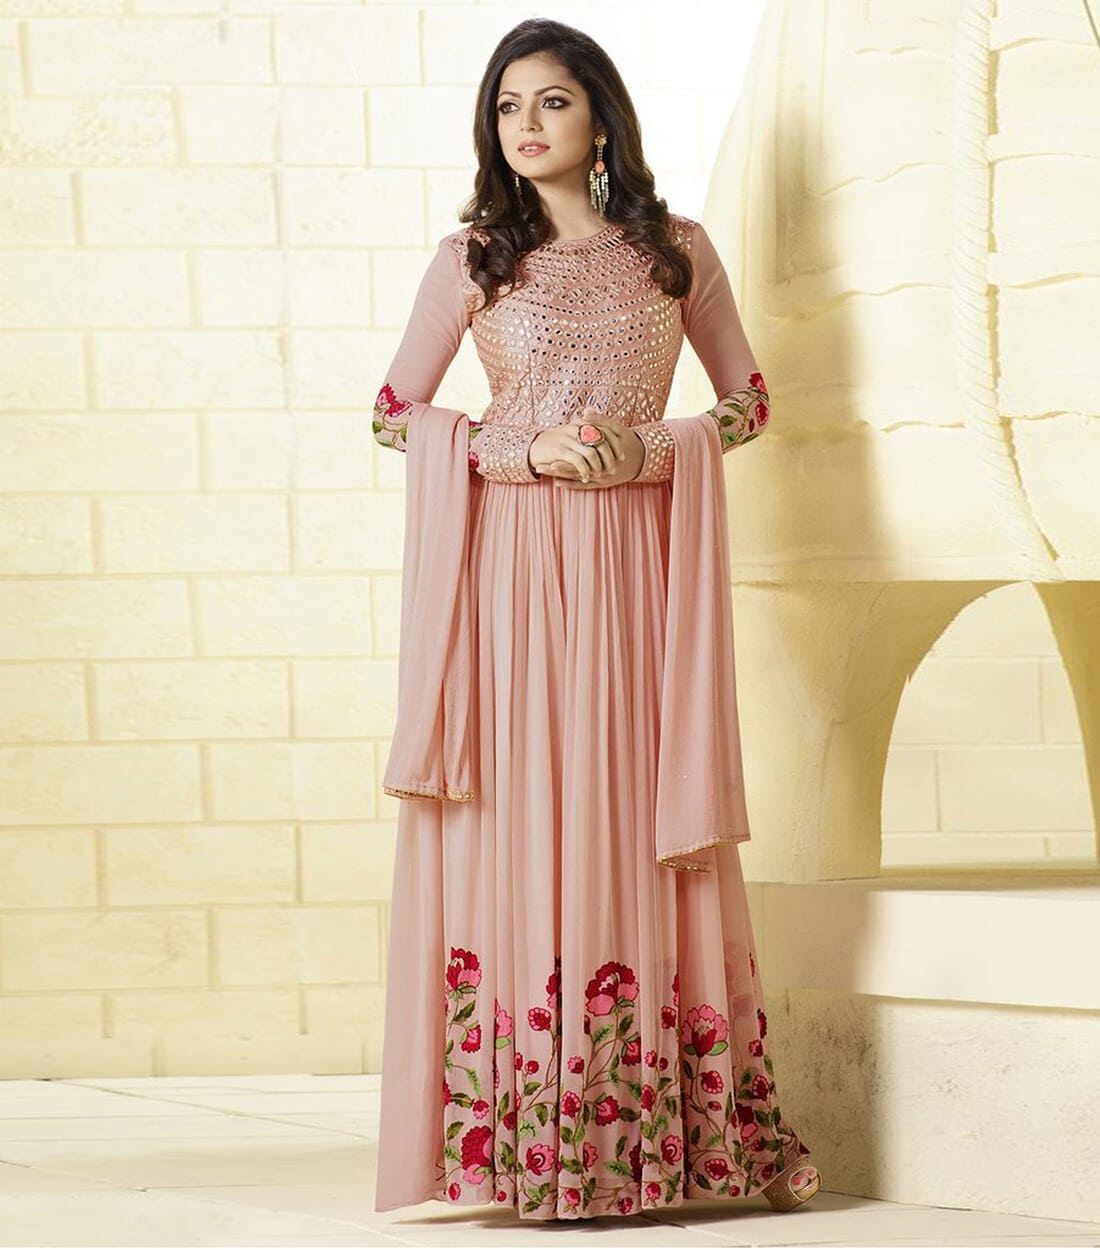 product price :- 1349 https://www.zeelshops.com/shop.php?pid=469&pname=Pink-Georgette-Embroidered-Semi-Stitched-Salwar-Suit contact as for more details 9924430008 or whatsapp      #saree #saree-georgette #dress #wedding-dress #dress-up #western-dress #dress  #krishna dress #long dresses #pakistanifashion #pakistanisuits